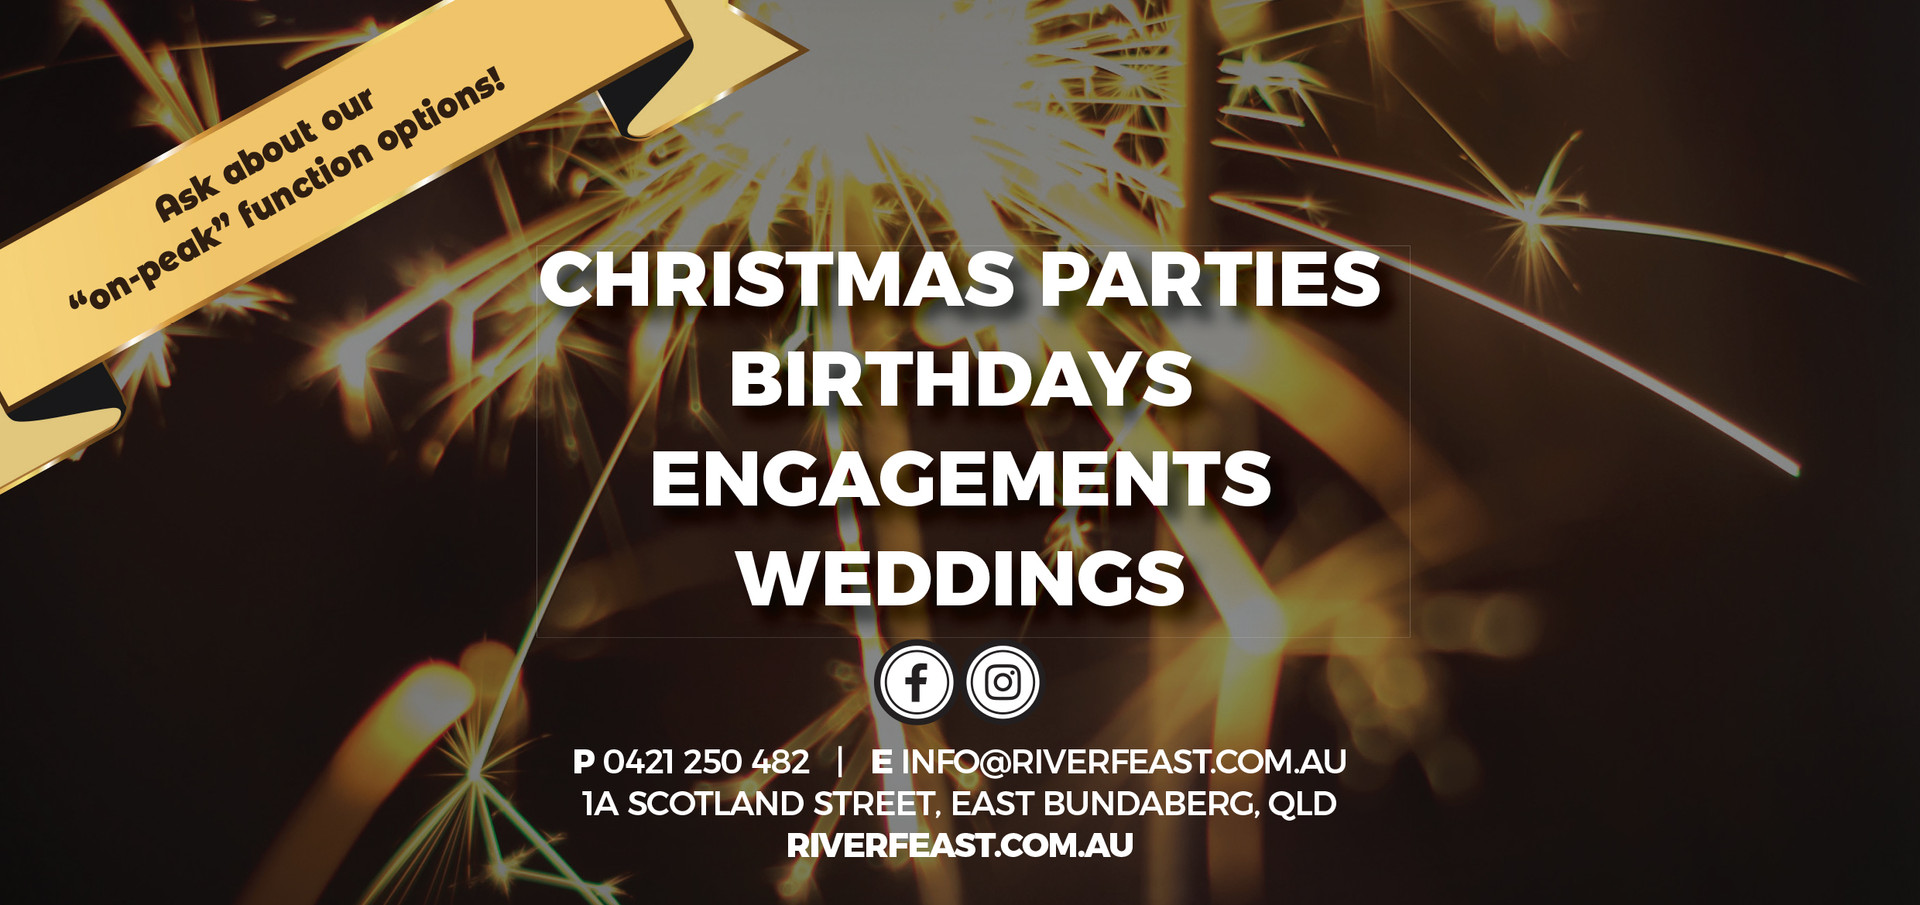 Wedding, Parties, Anything....